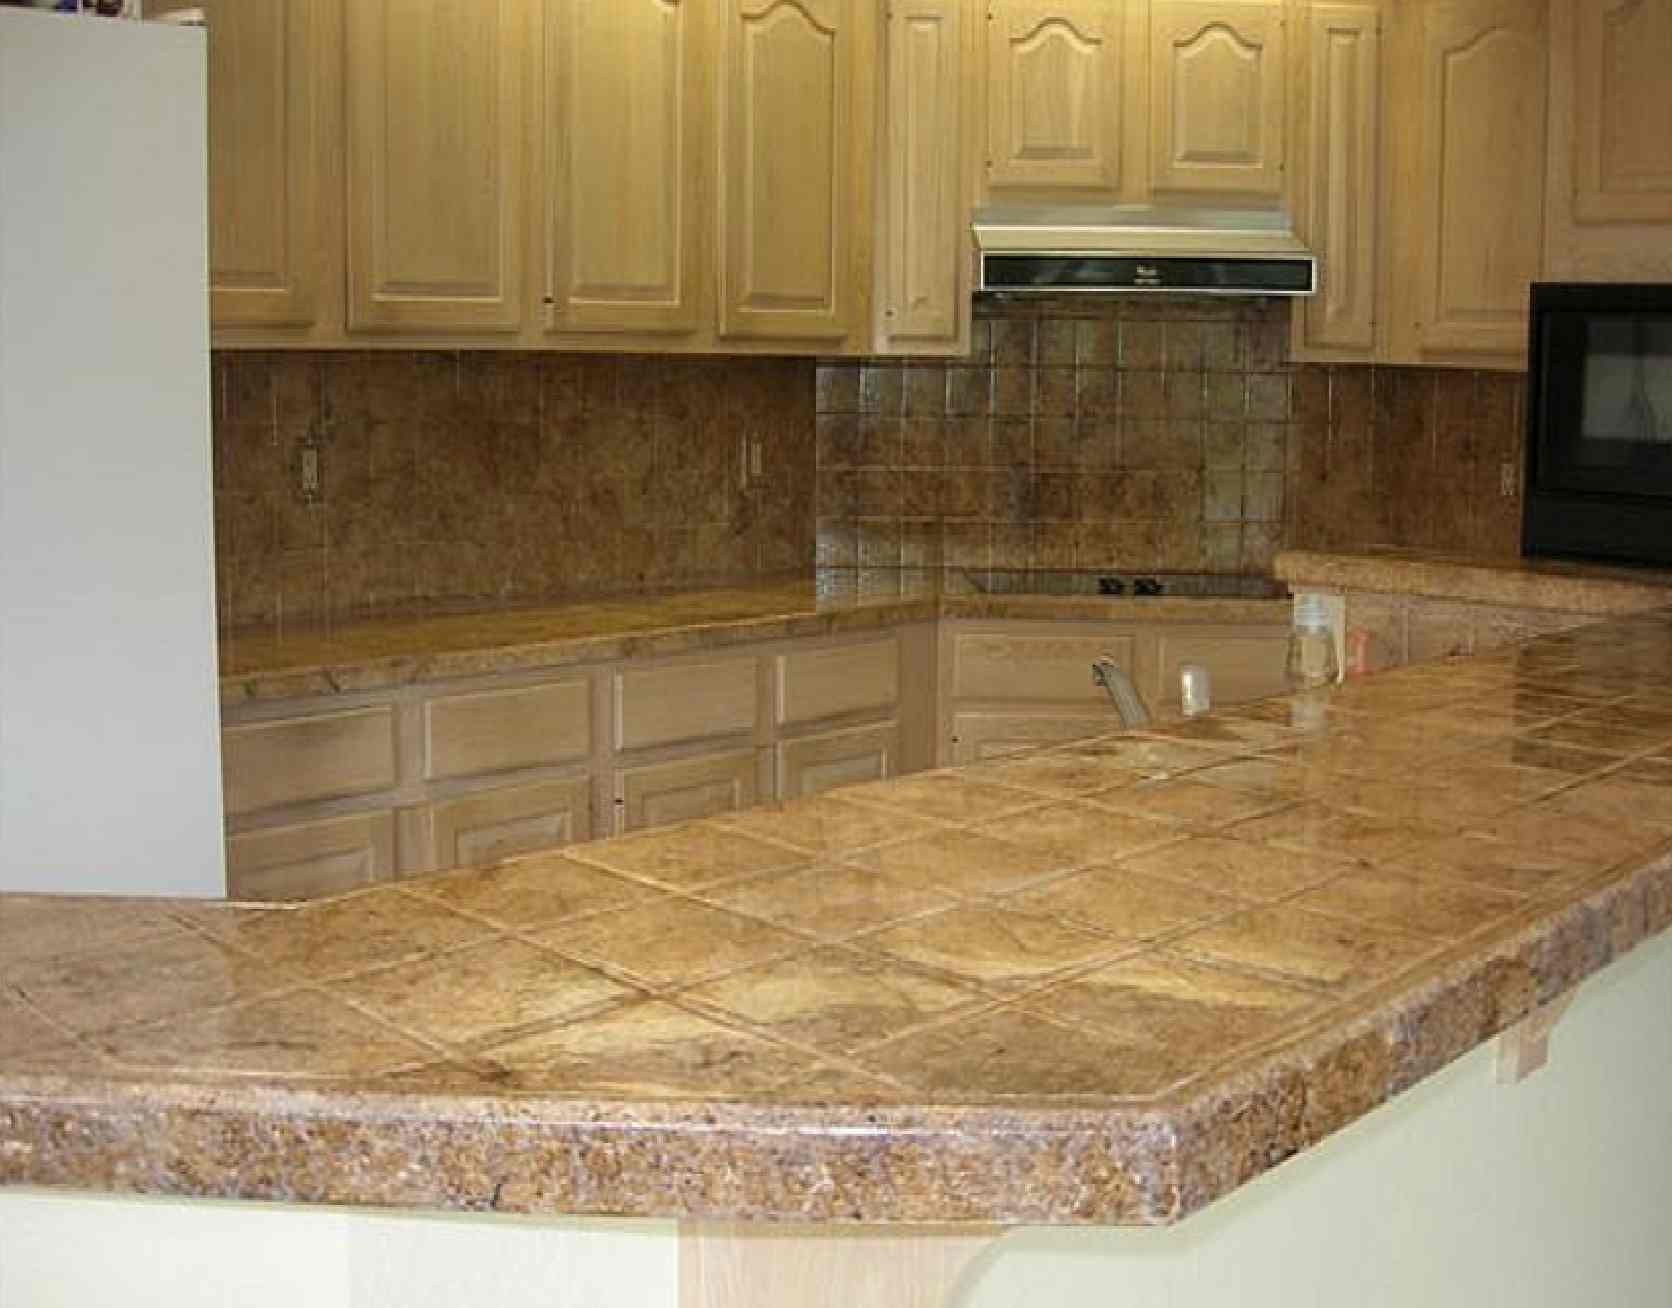 Ideas For Painting A Kitchen Counter With White Top on